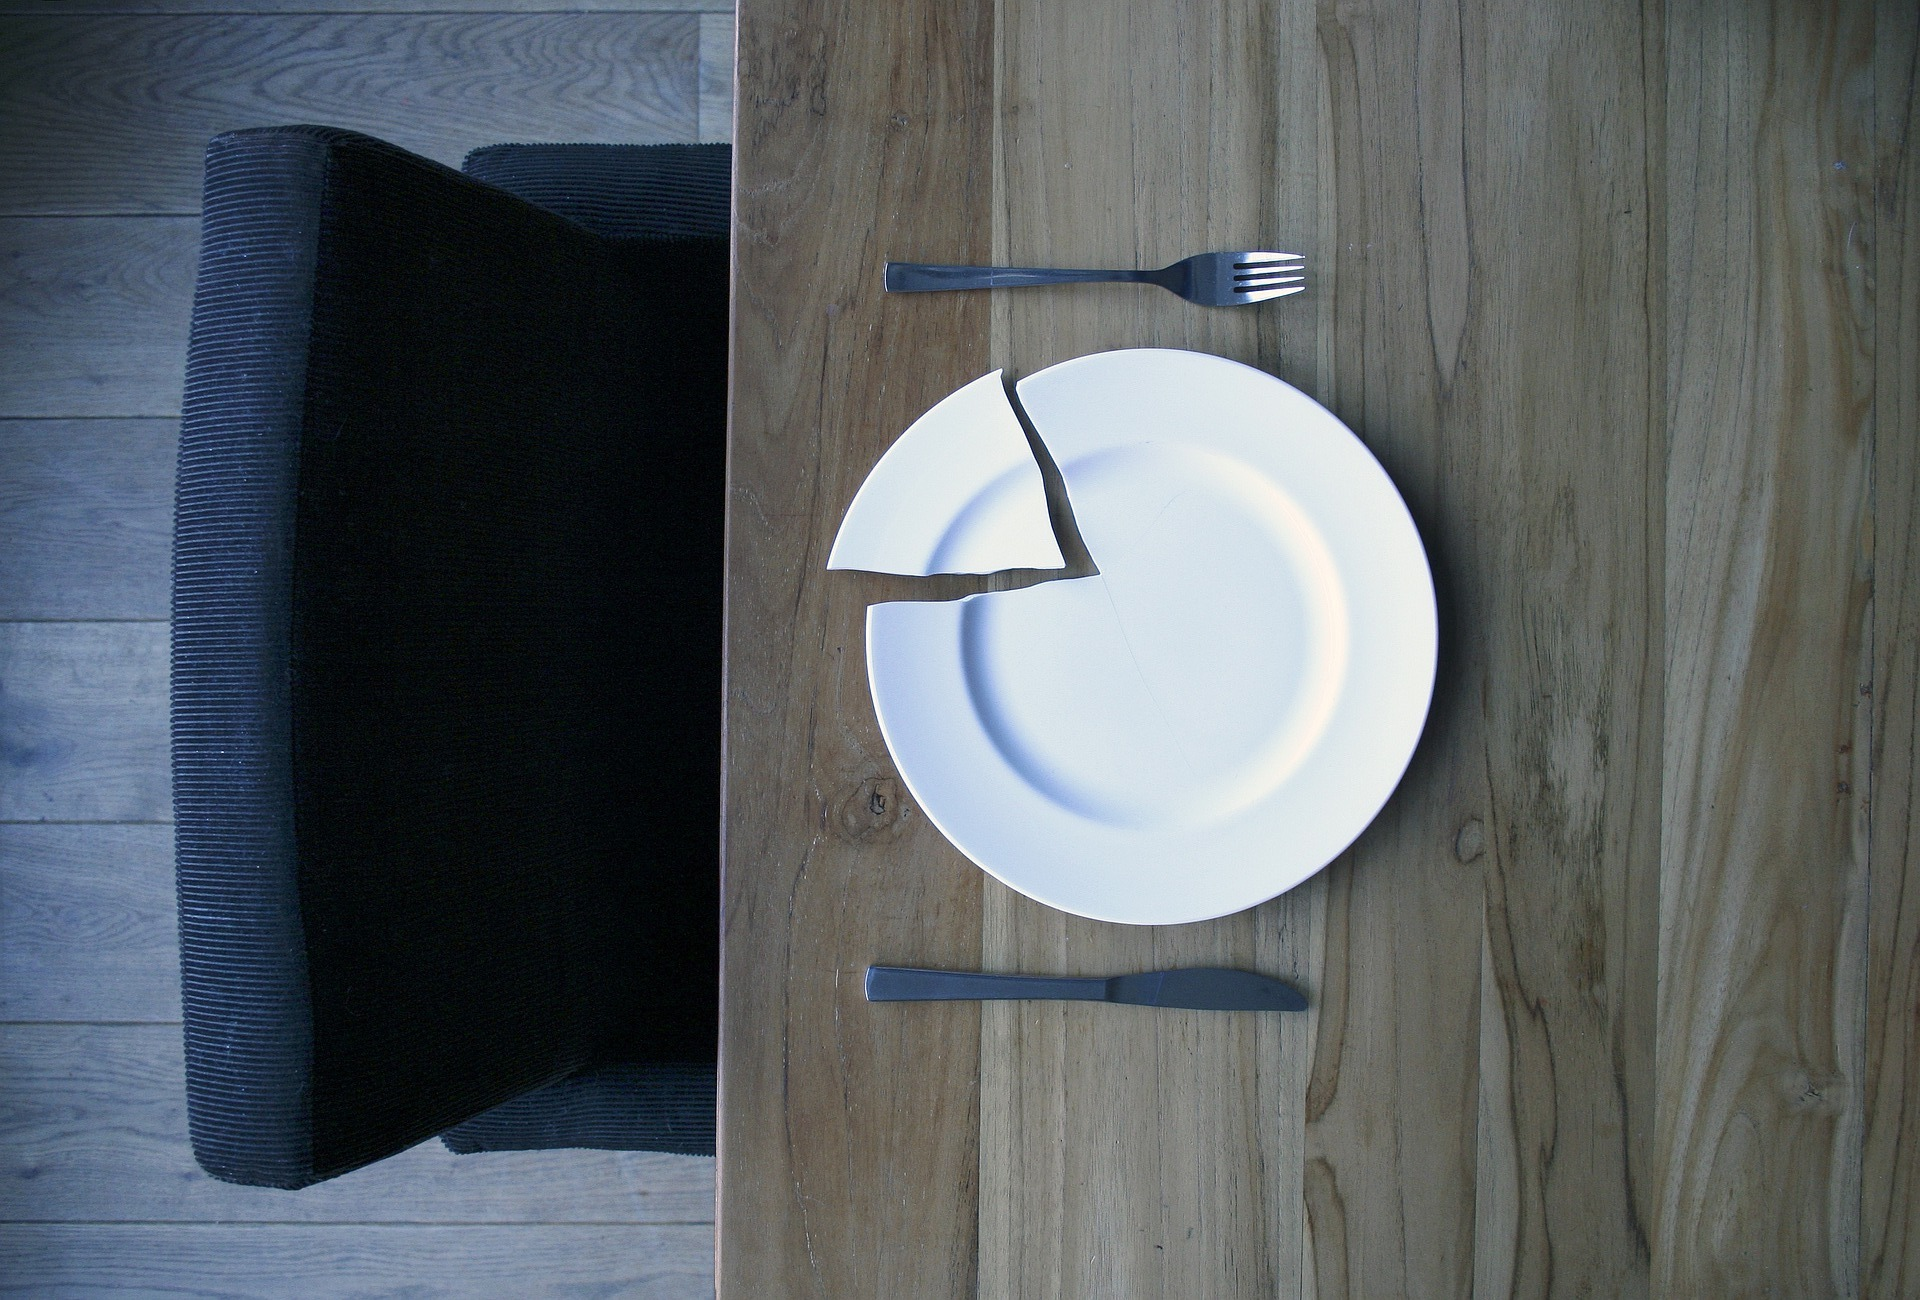 broken-plate-on-a-wooden-table-840112_1920